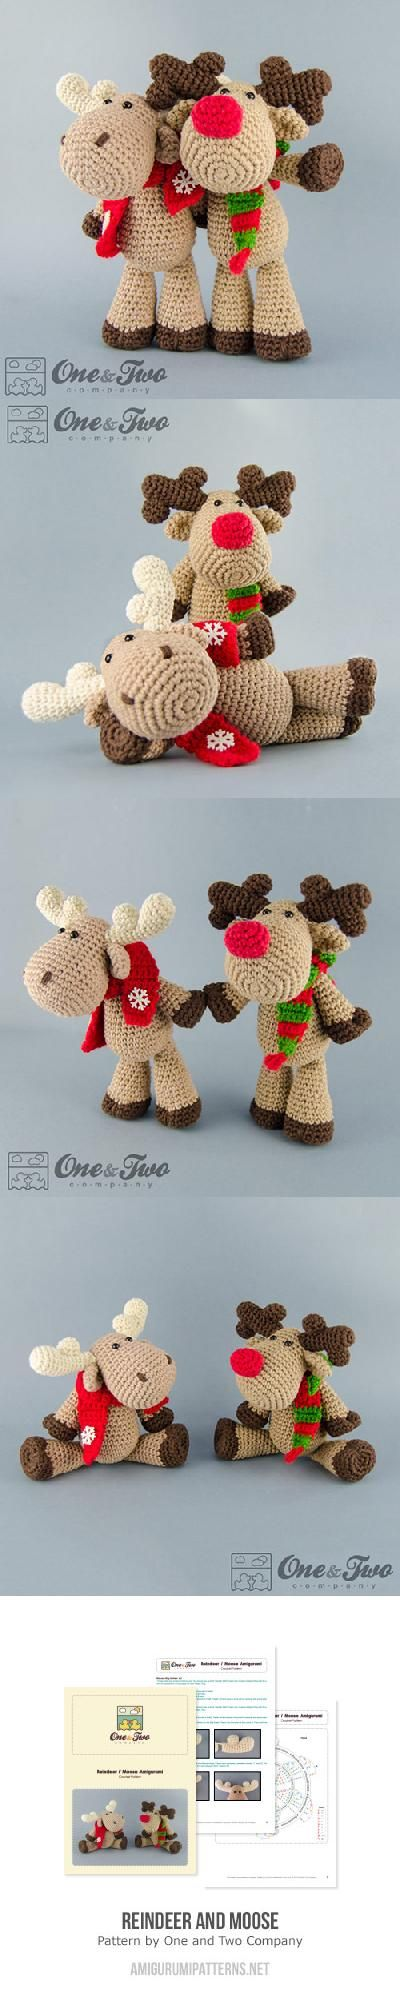 Found at Amigurumipatterns.net Reindeer and Moose by One and Two Company $4